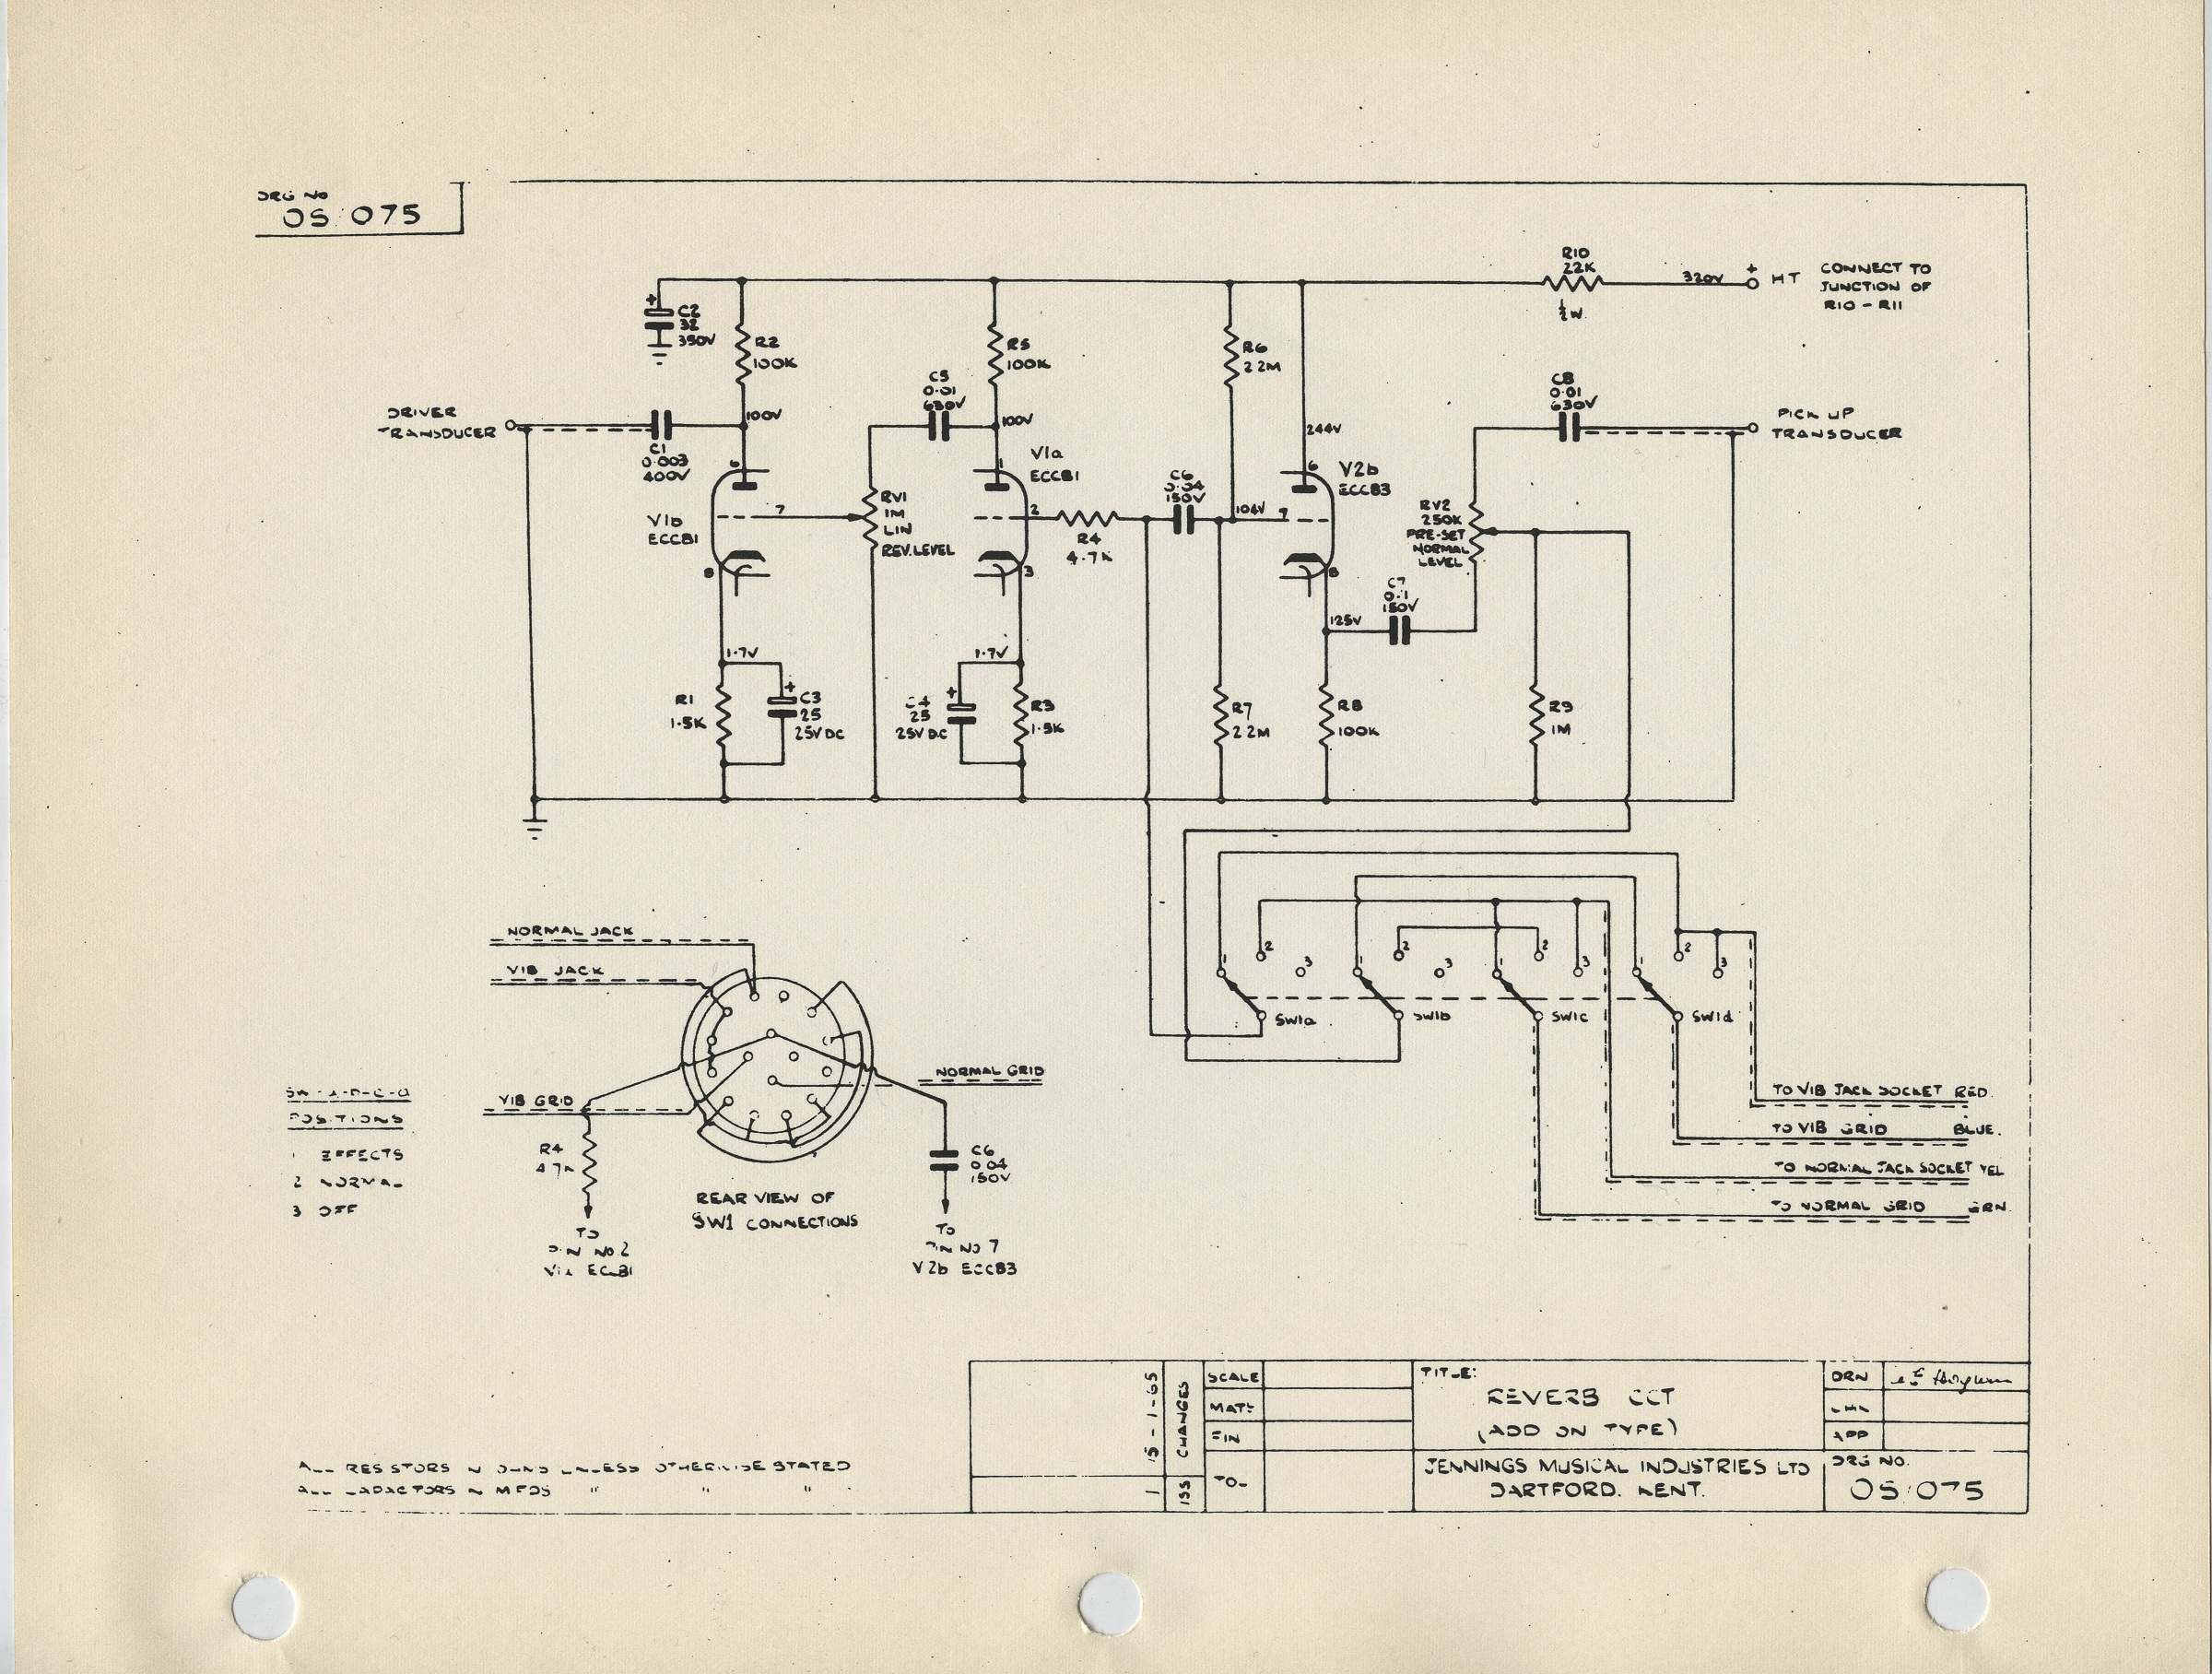 821 Thomas Organ Schematics Wire Center Service Manuals And Electric Wiring Diagrams Auto Repair Manual Electrical Diagram U2022 Rh 6weeks Co Uk Model 225